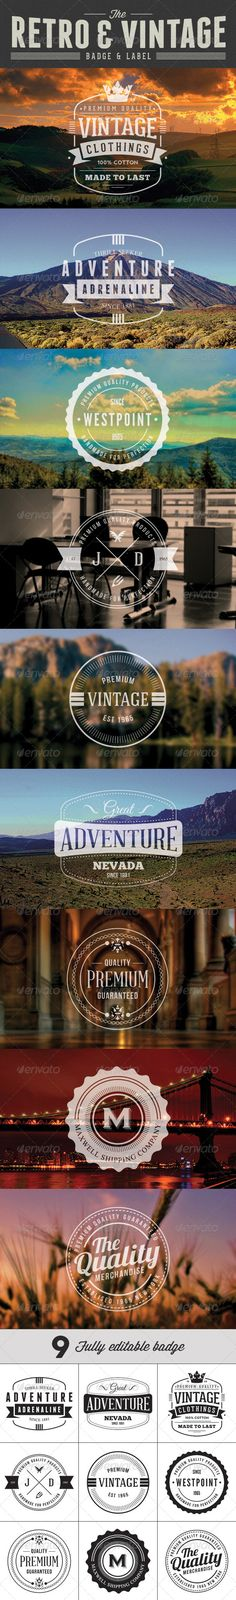 Retro Vintage Badge & Label Template | Buy and Download: http://graphicriver.net/item/retro-vintage-badge-label/7182978?WT.ac=category_thumb&WT.z_author=mengloong&ref=ksioks